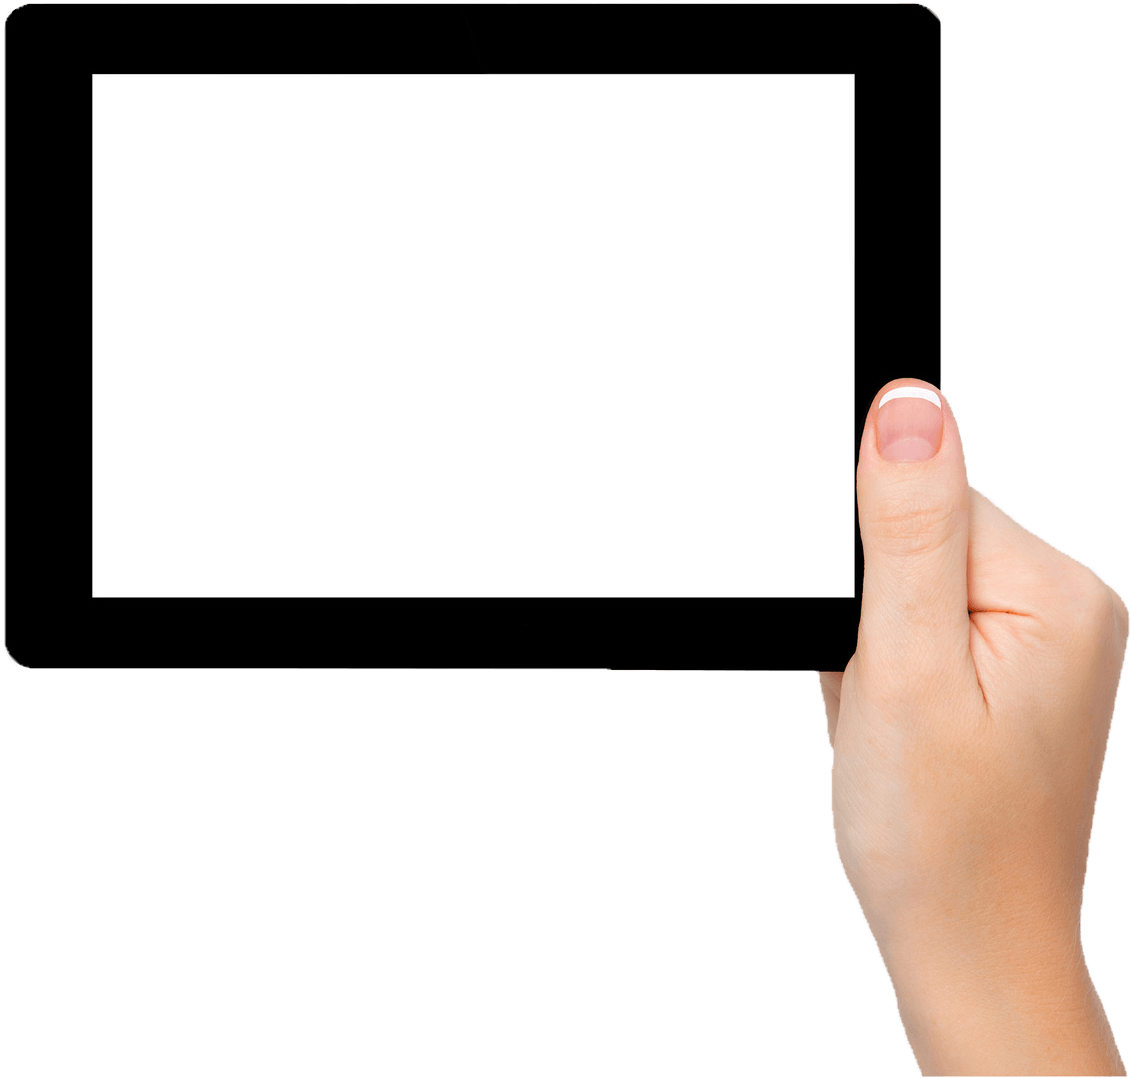 Download tablet free png photo images and clipart freepngimg tablet in hand png image png image voltagebd Choice Image